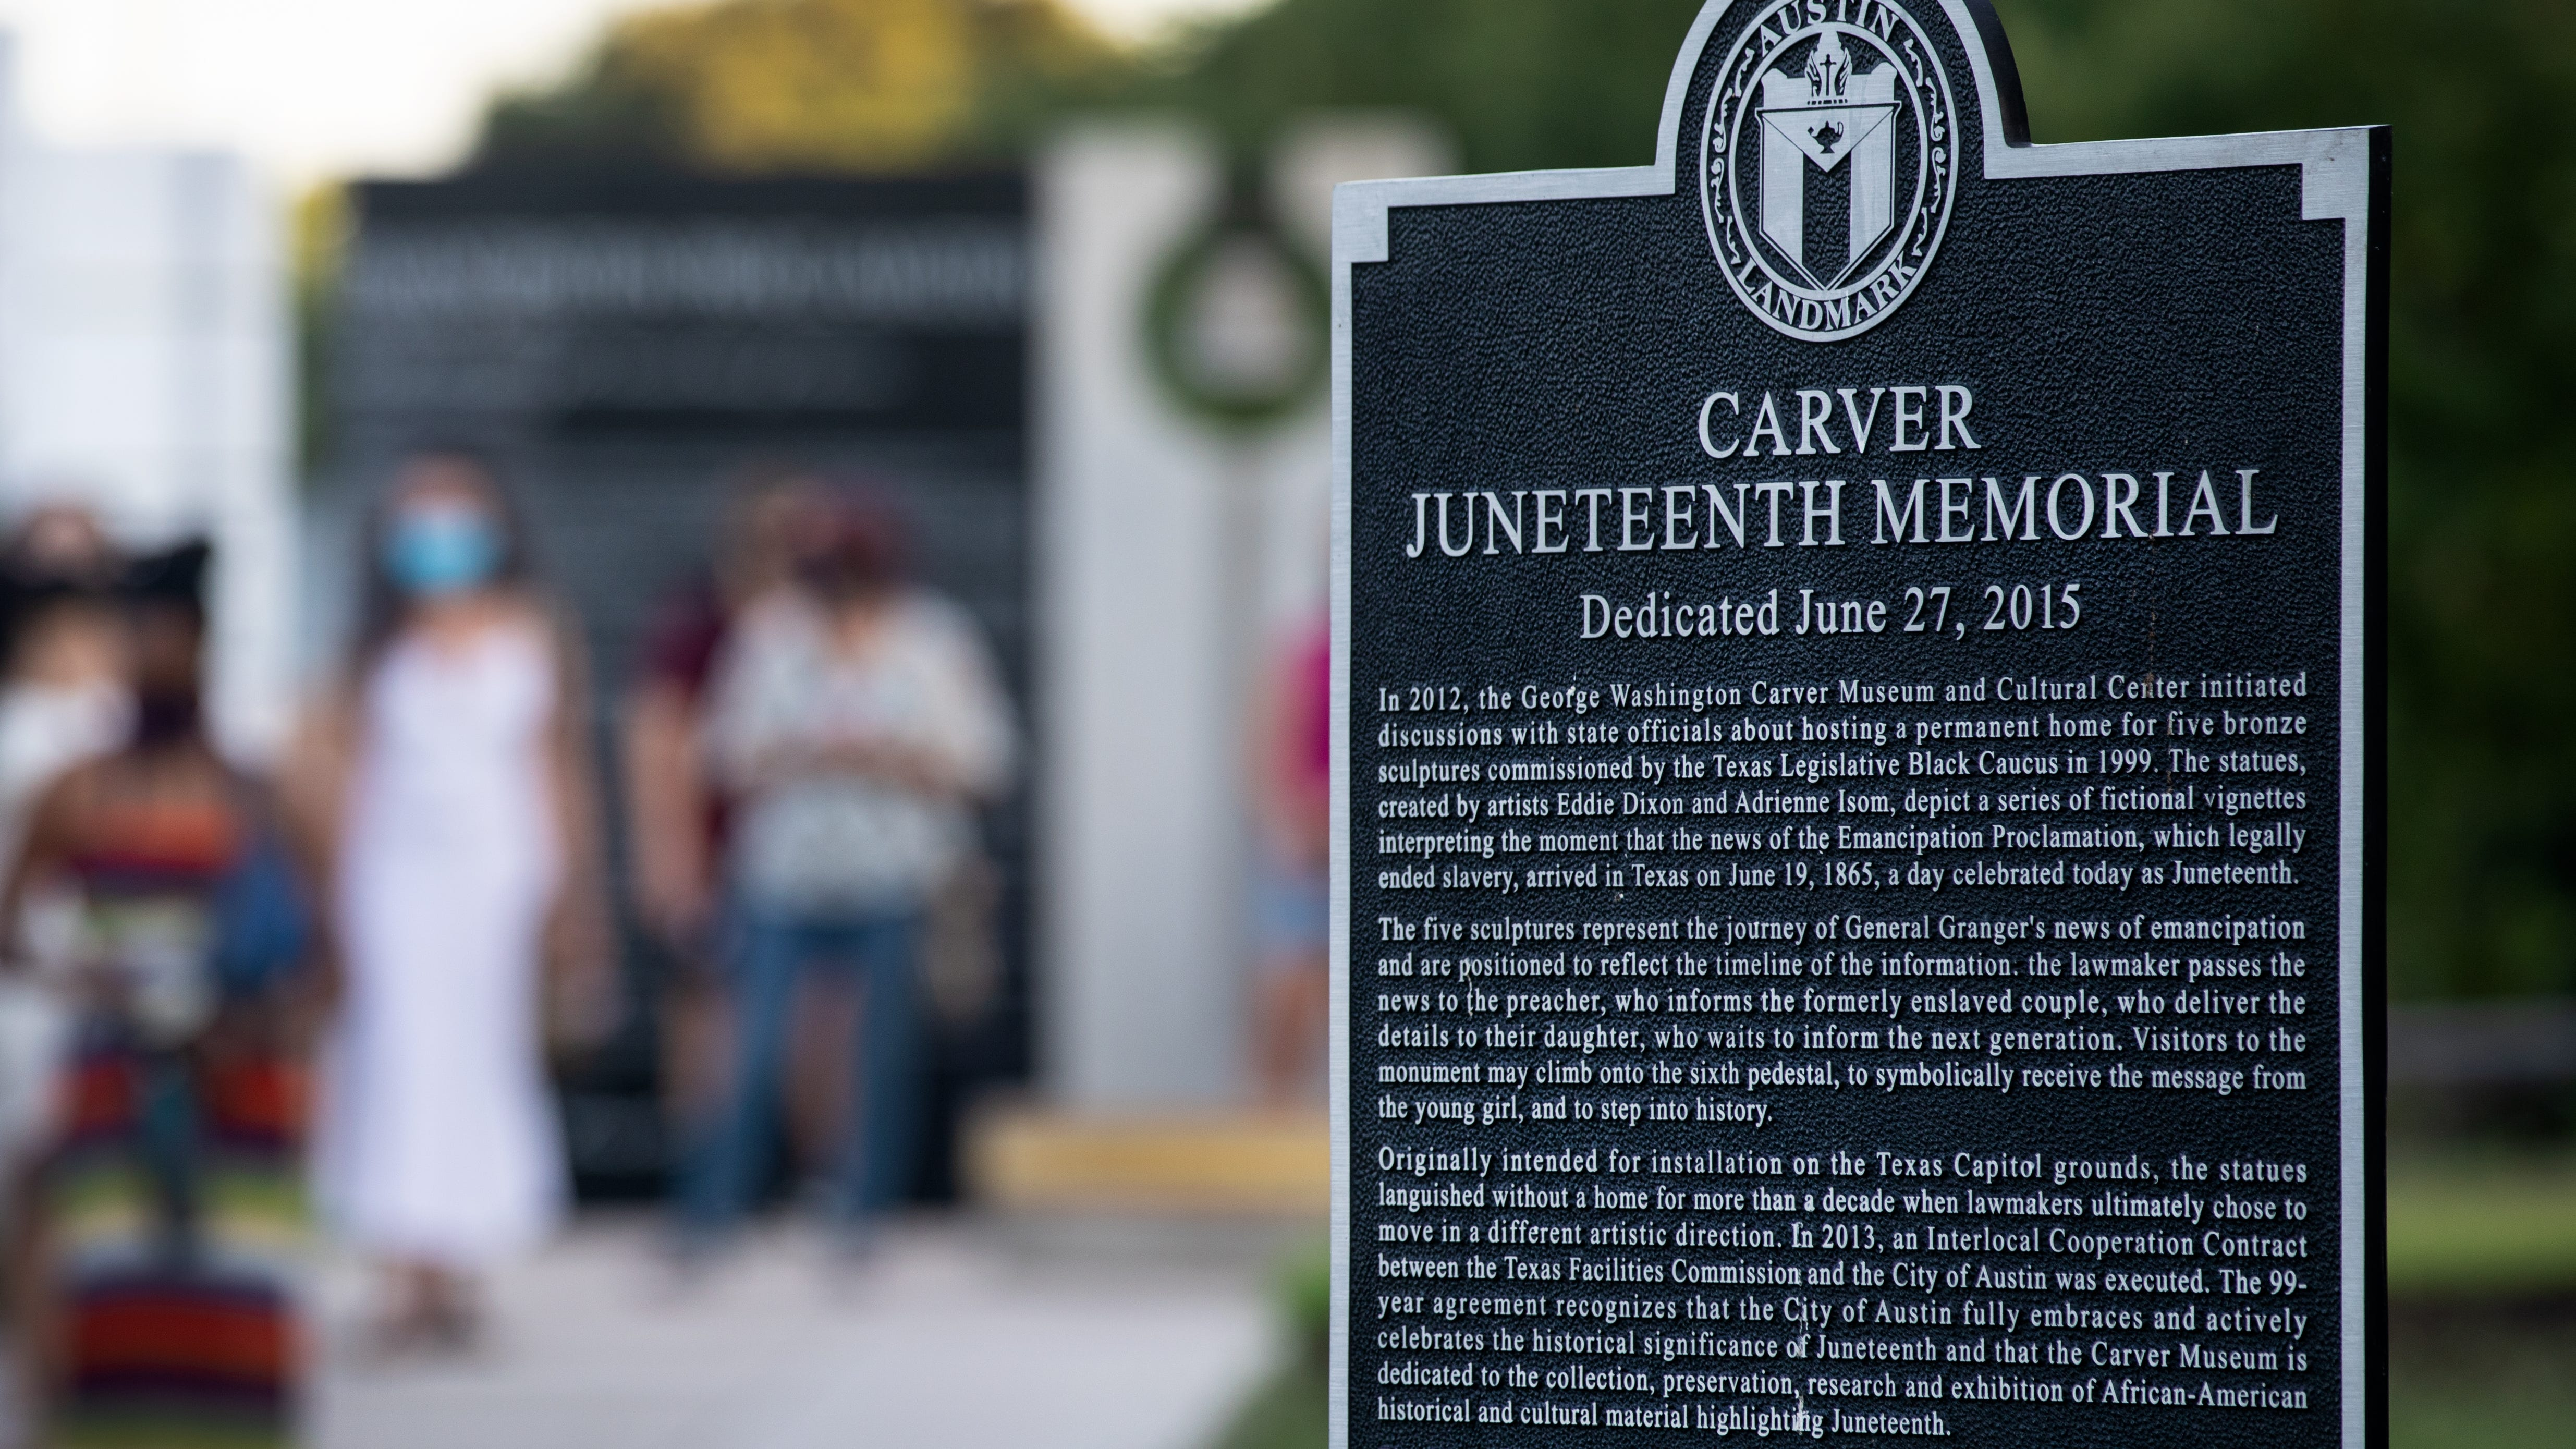 The 94-year-old whose lifelong mission has been making Juneteenth a federal holiday